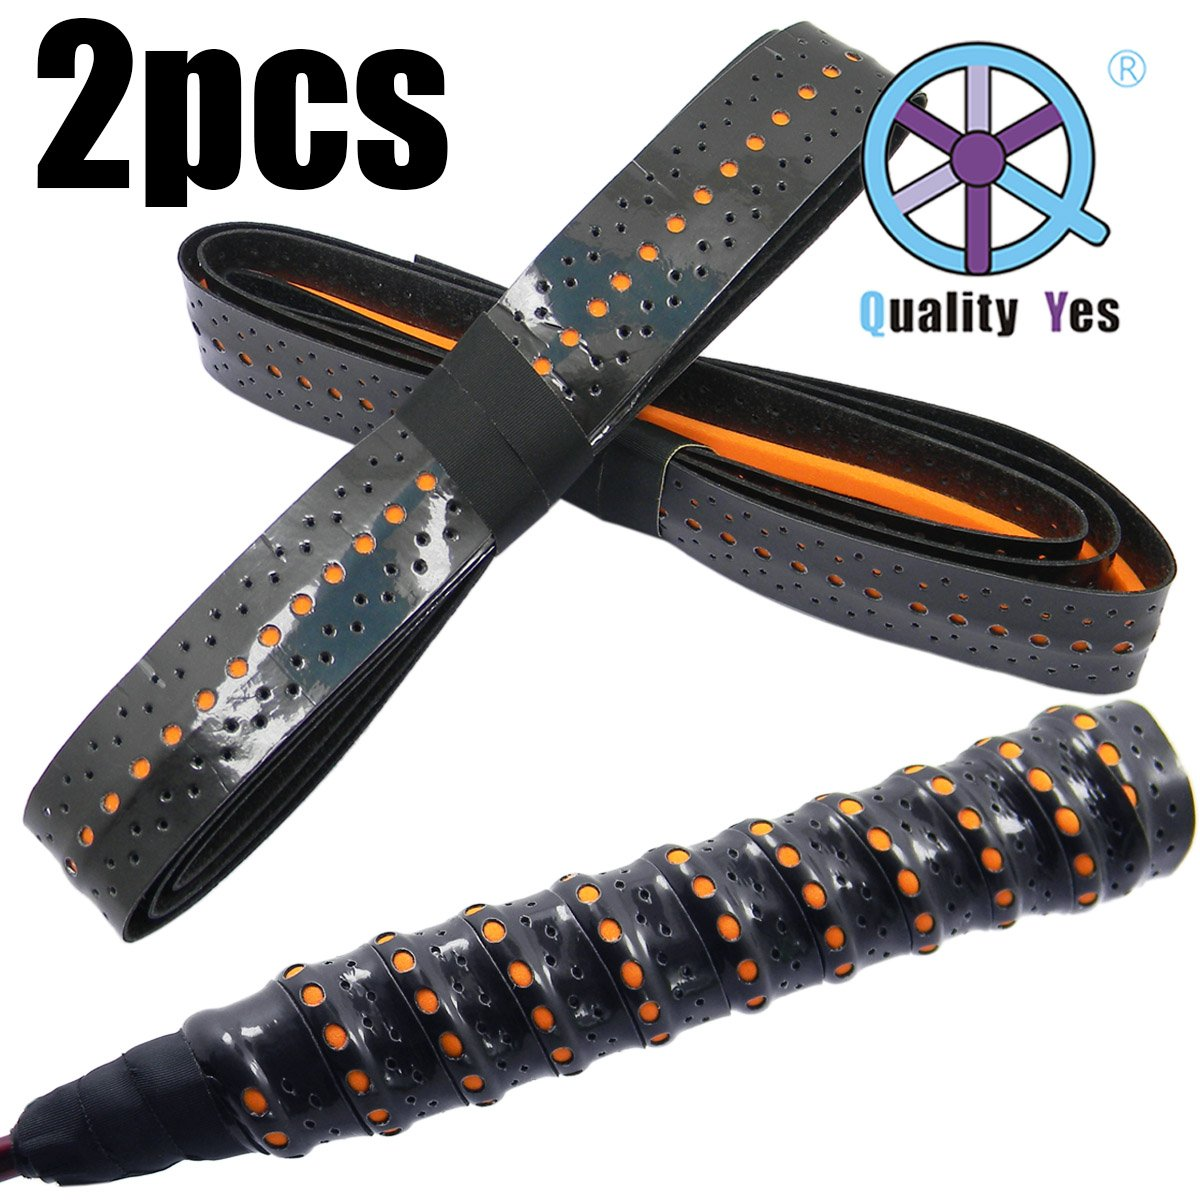 Quality Yes QY 2Pack Double Color Widened Perforated Super Absorbent Tennis Racket Overgrip Anti Slip Keels Badminton Racket Tape Wrap Table Tennis Racket Tape, Black